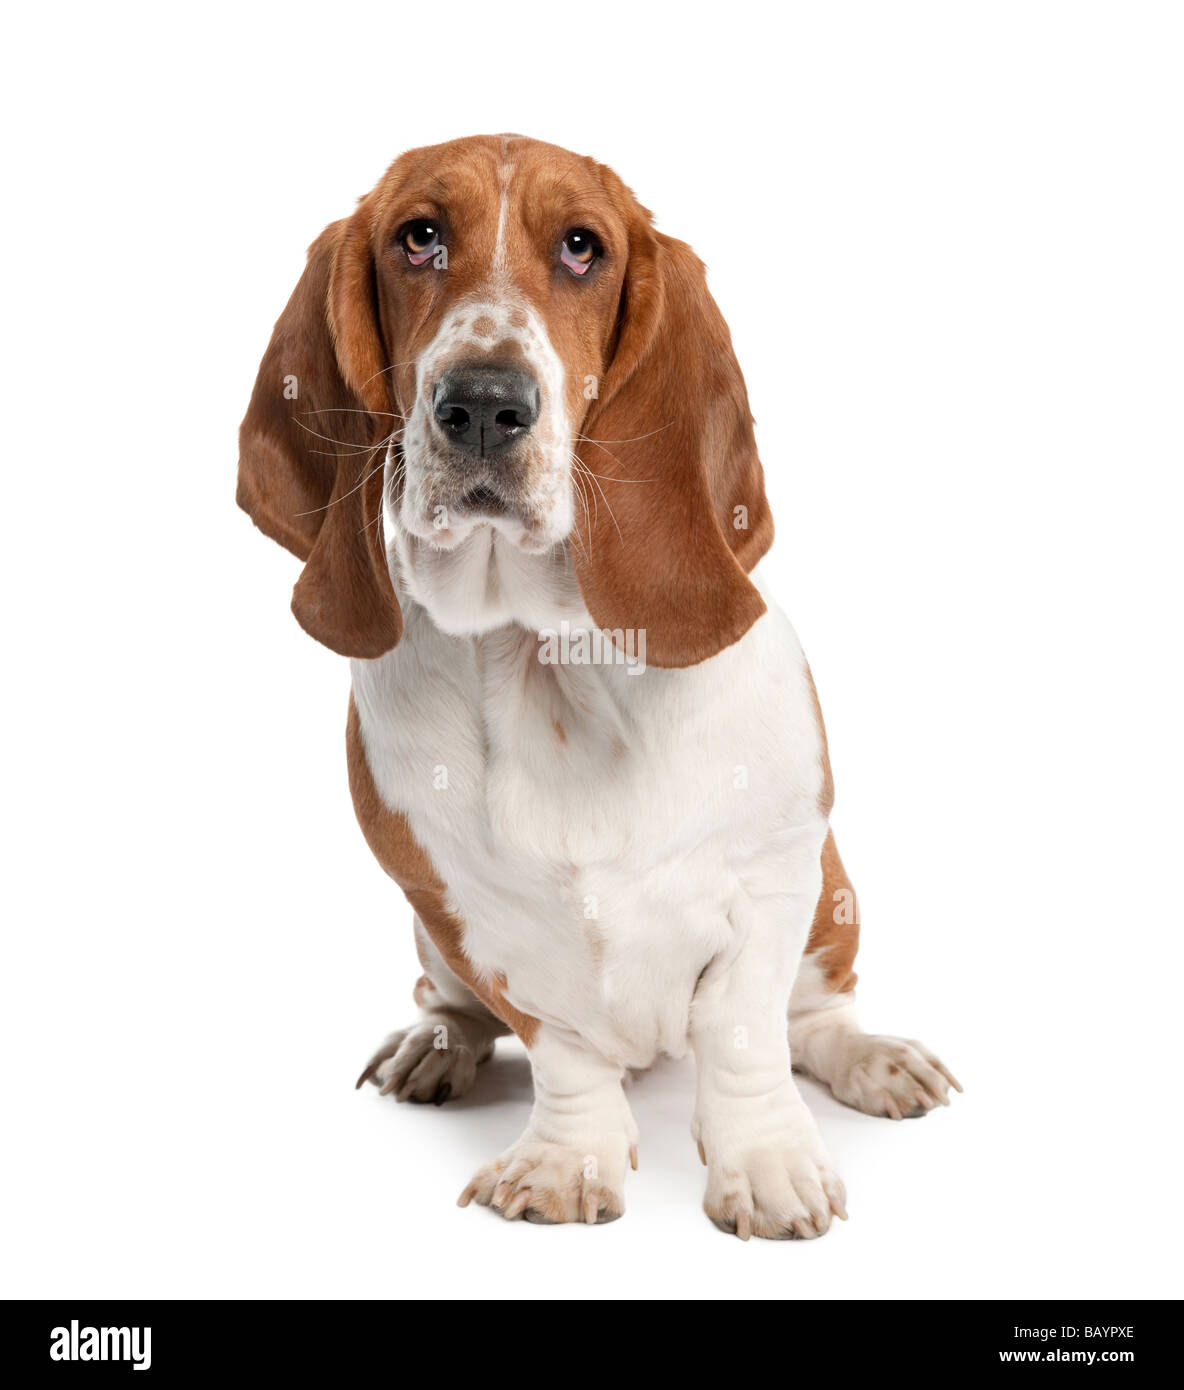 Basset Hound 1 year old in front of a white background - Stock Image